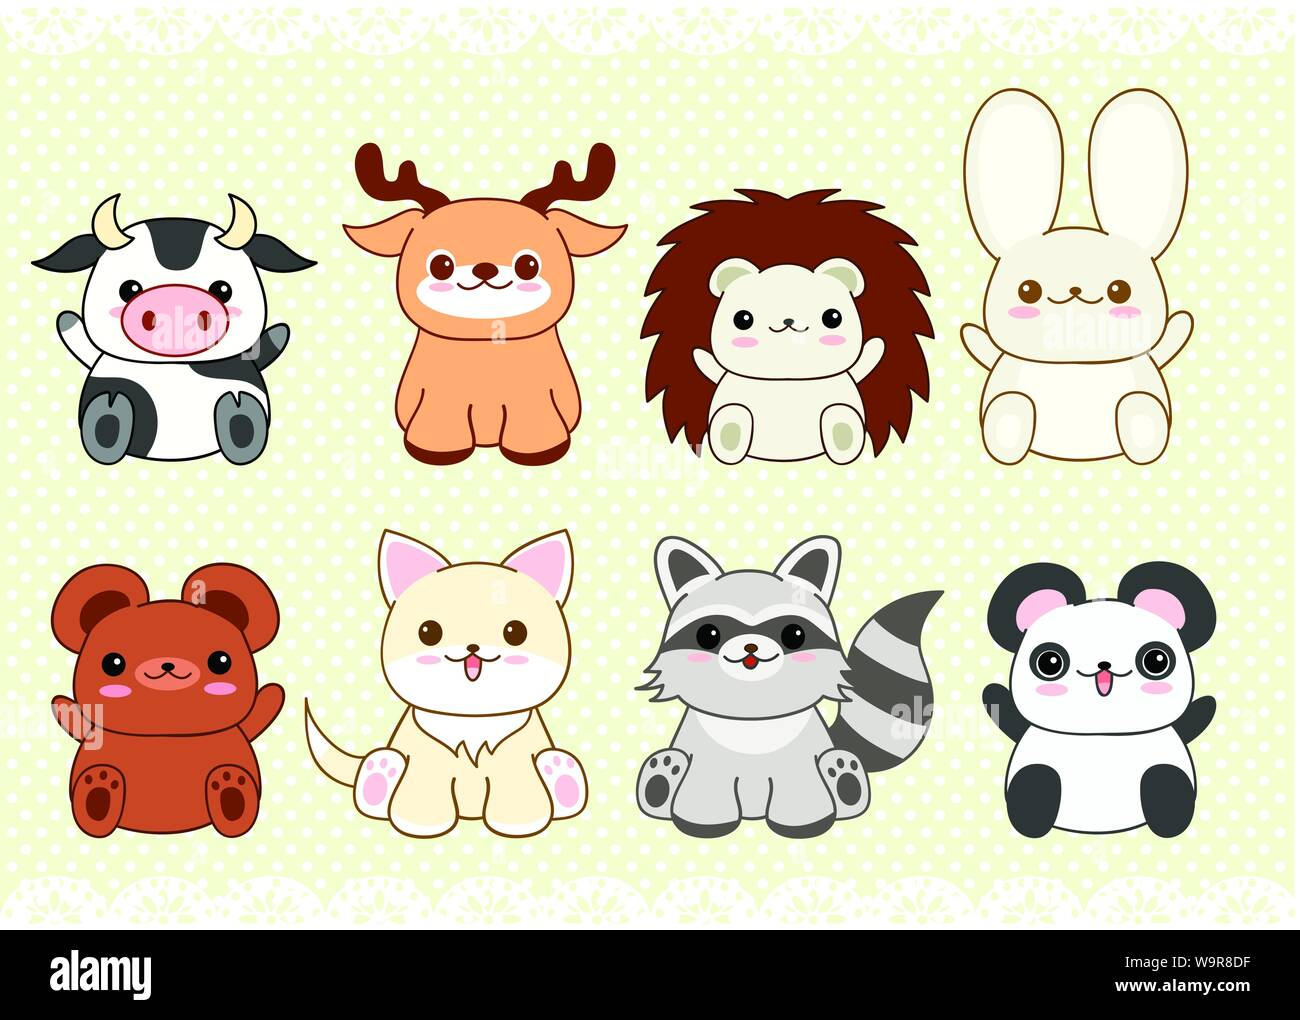 Collection Of Cute Baby Animals In Kawaii Style Cat Rabbit Panda Hedgehog Raccoon Deer Bear Cow On Retro Background With Dots Pattern And Lac Stock Vector Image Art Alamy